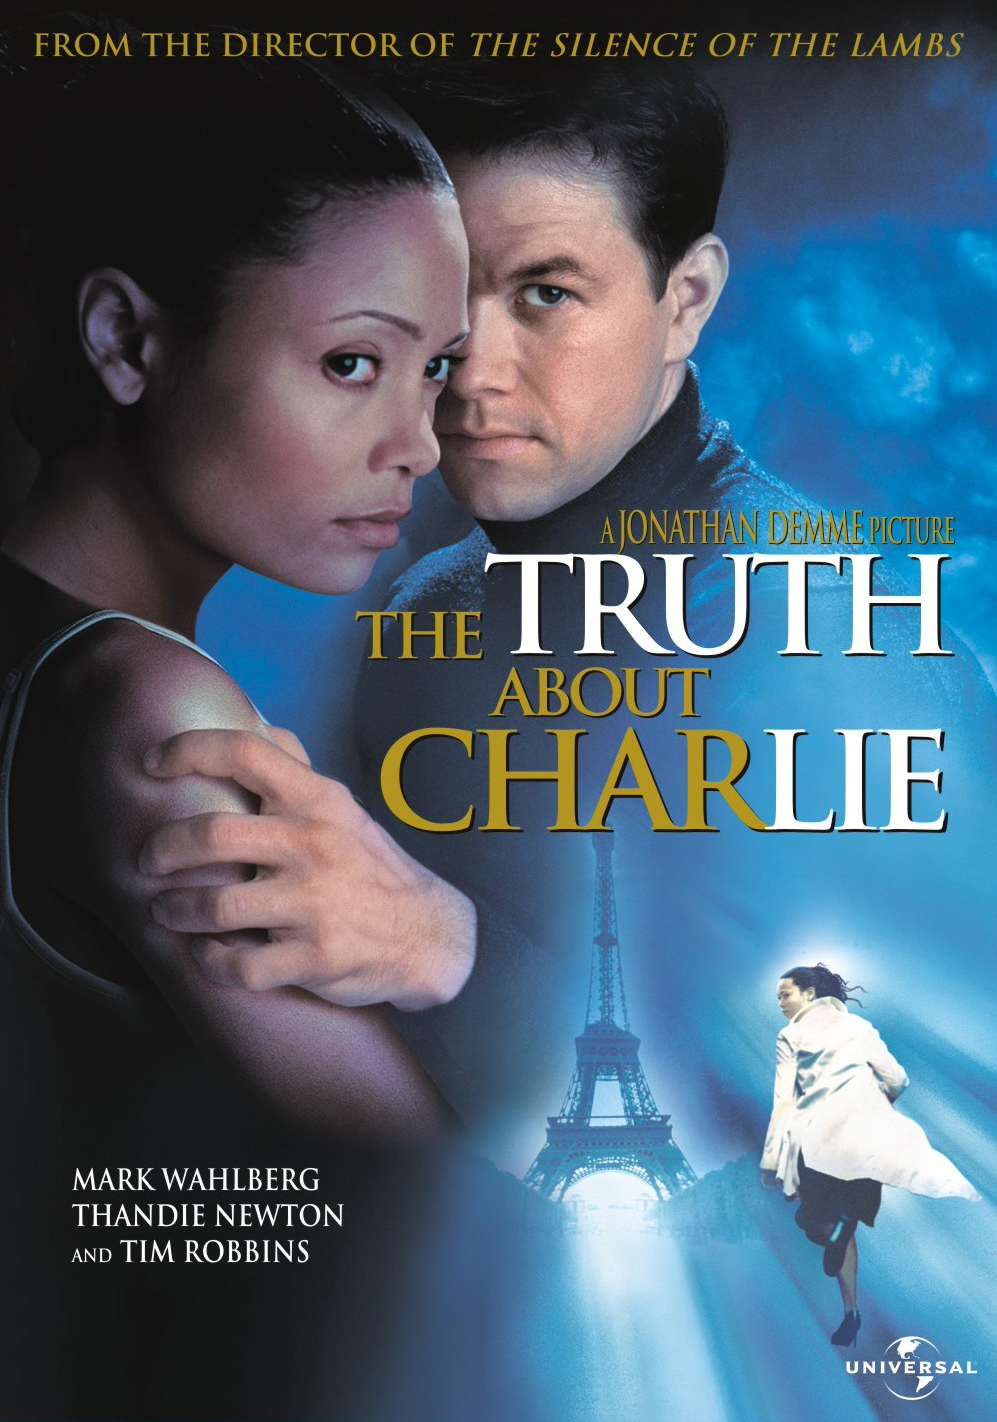 The Truth About Charlie - English DVD Layout1 copy.jpg